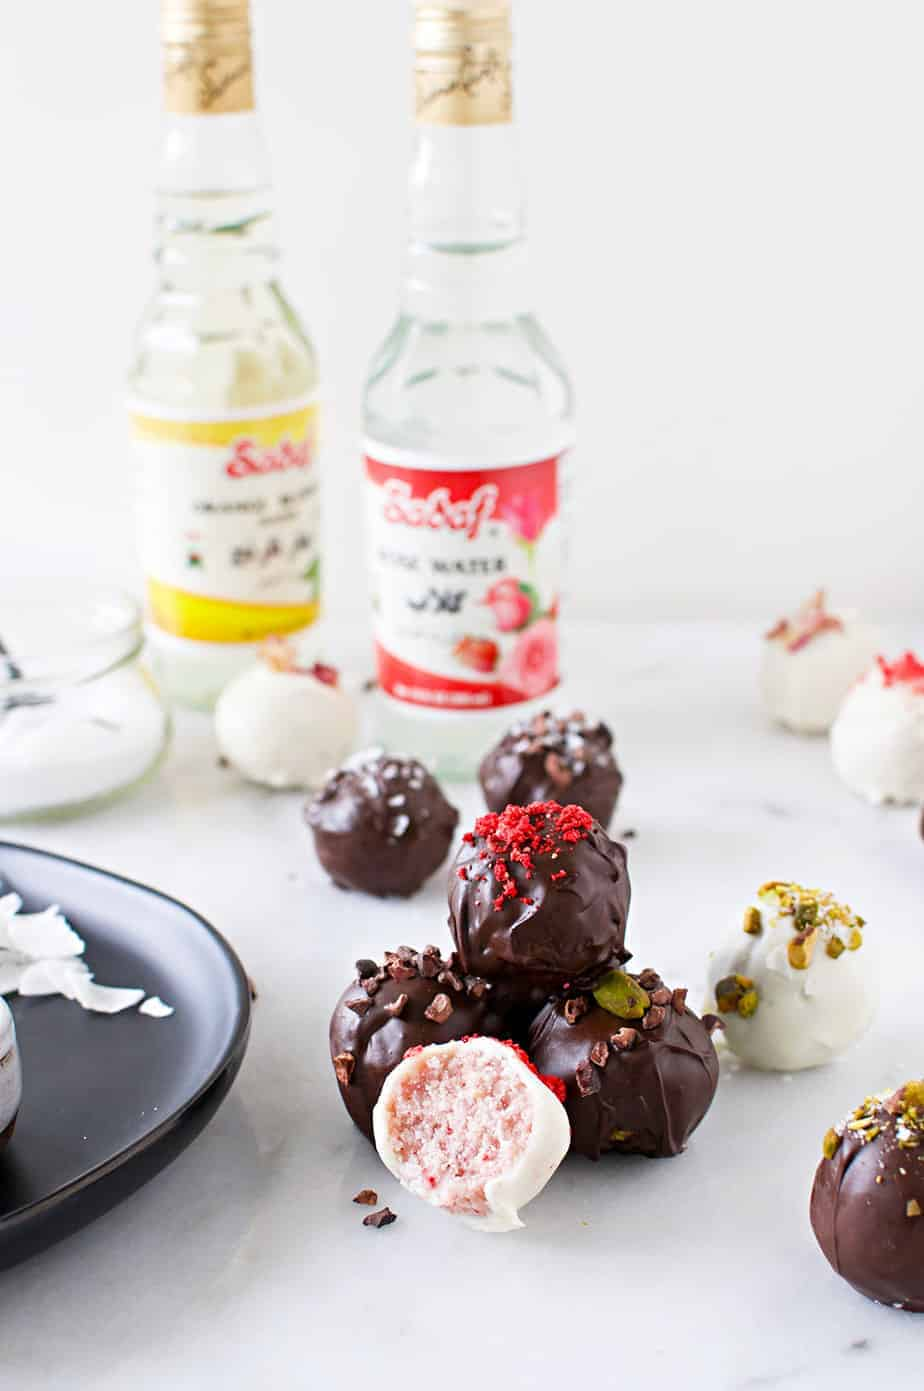 Vegan Coconut Truffles two ways: Vegan Rose Truffles and Vegan Pistachio Truffles recipe (via thepigandqill.com) #glutenfree #candy #sweets #valentinesday #chocolate #coconutbutter